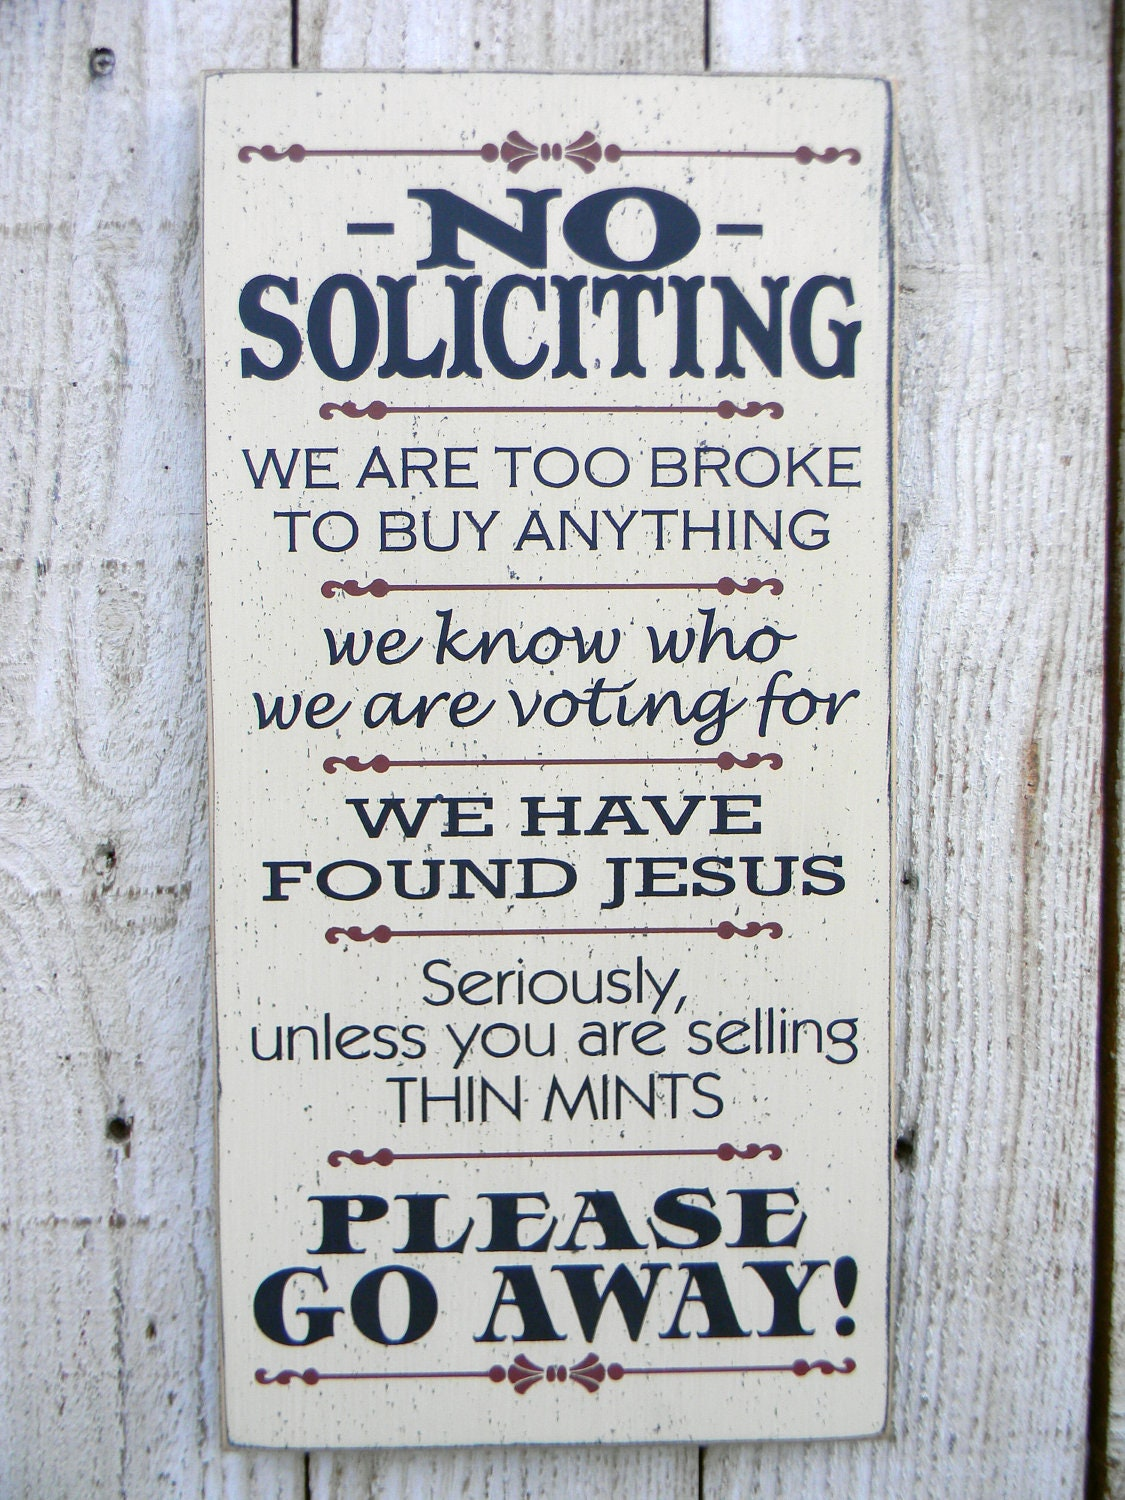 No Soliciting Sign We Are Too Broke To Buy Anything 9 X